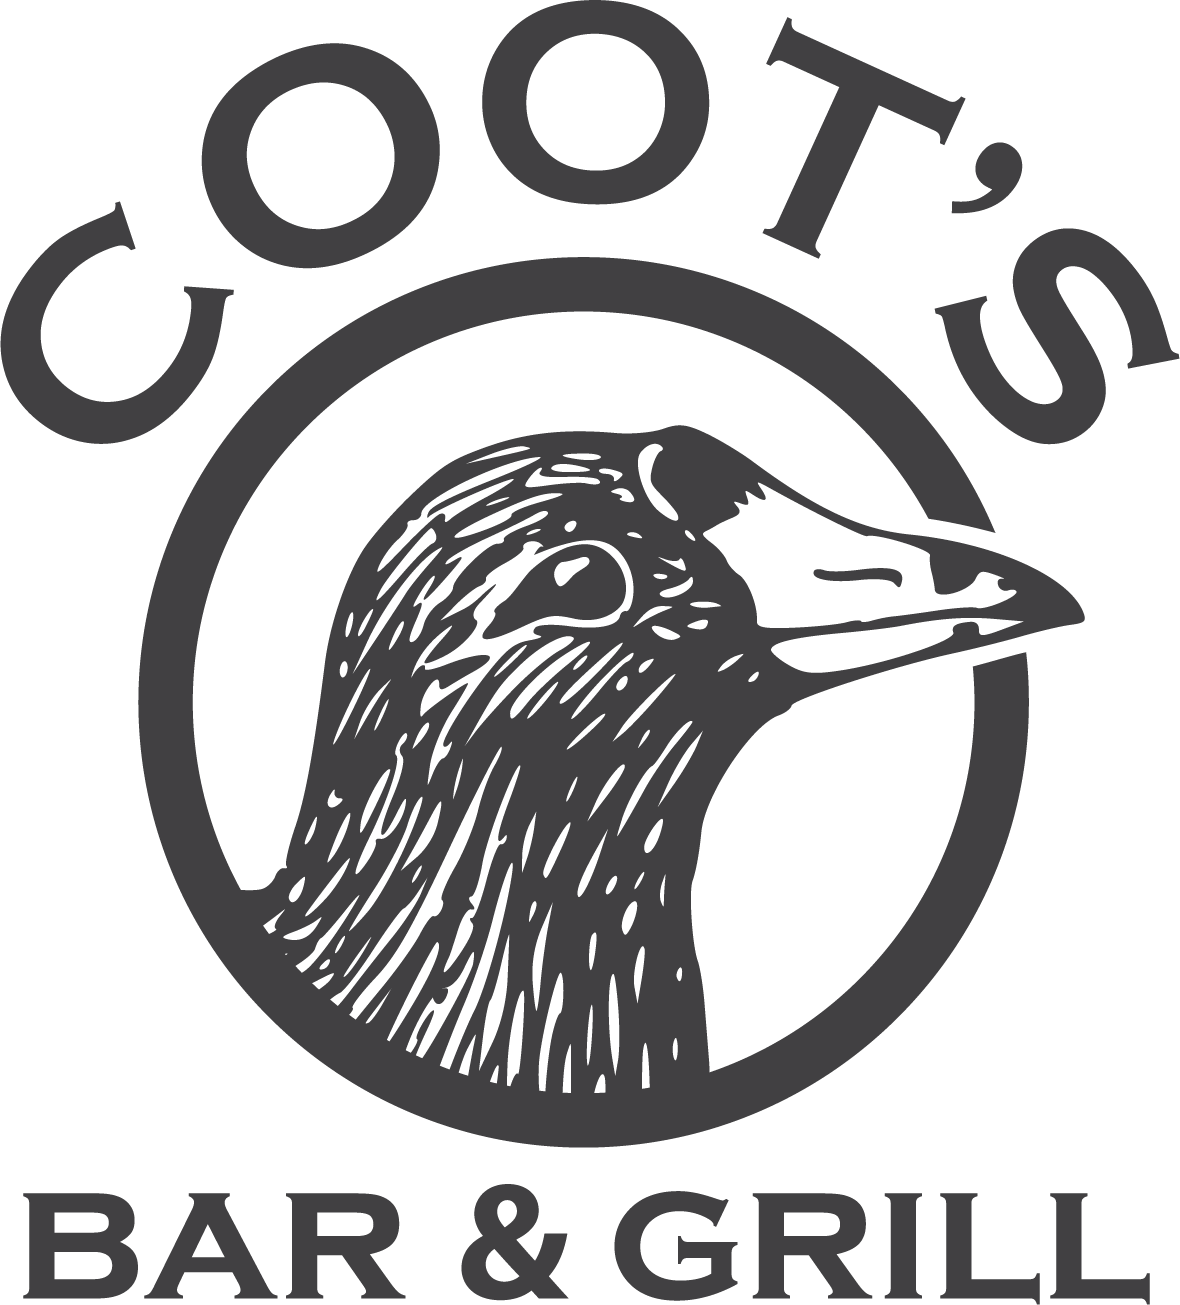 Coot's Bar & Grill